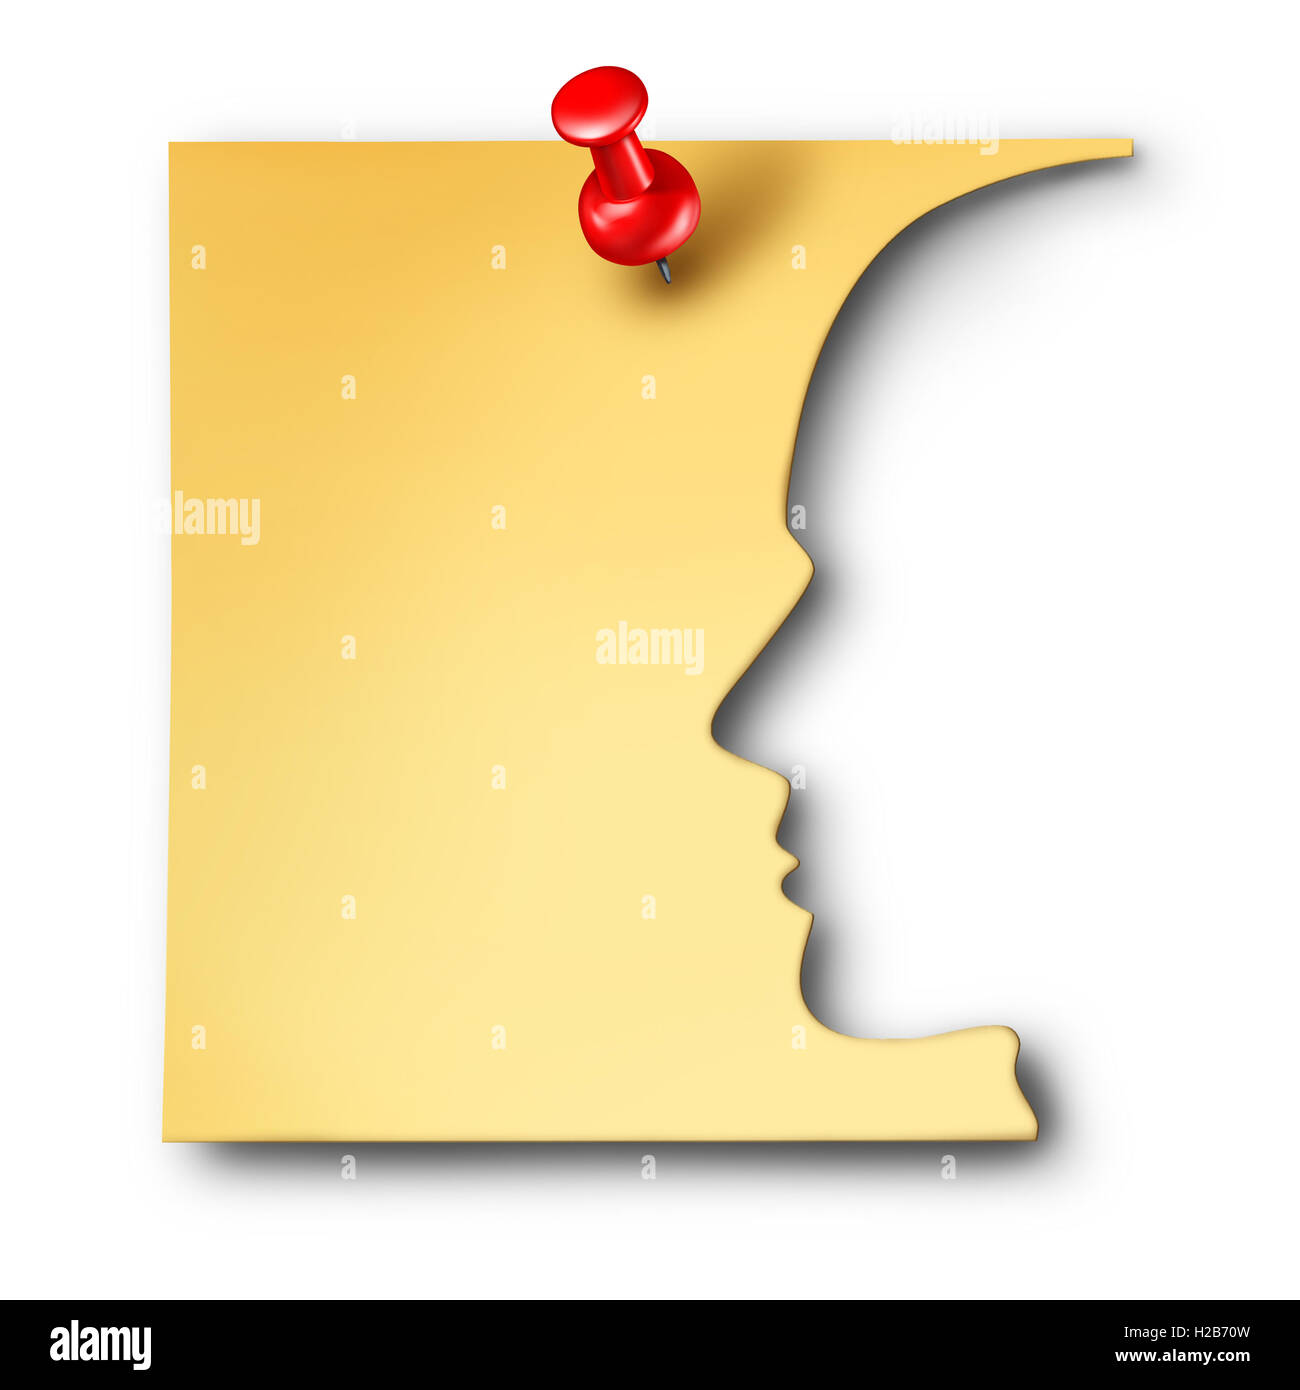 Office worker reminder as an employee symbol cut out of a business note as a corporate career thinking symbol or - Stock Image